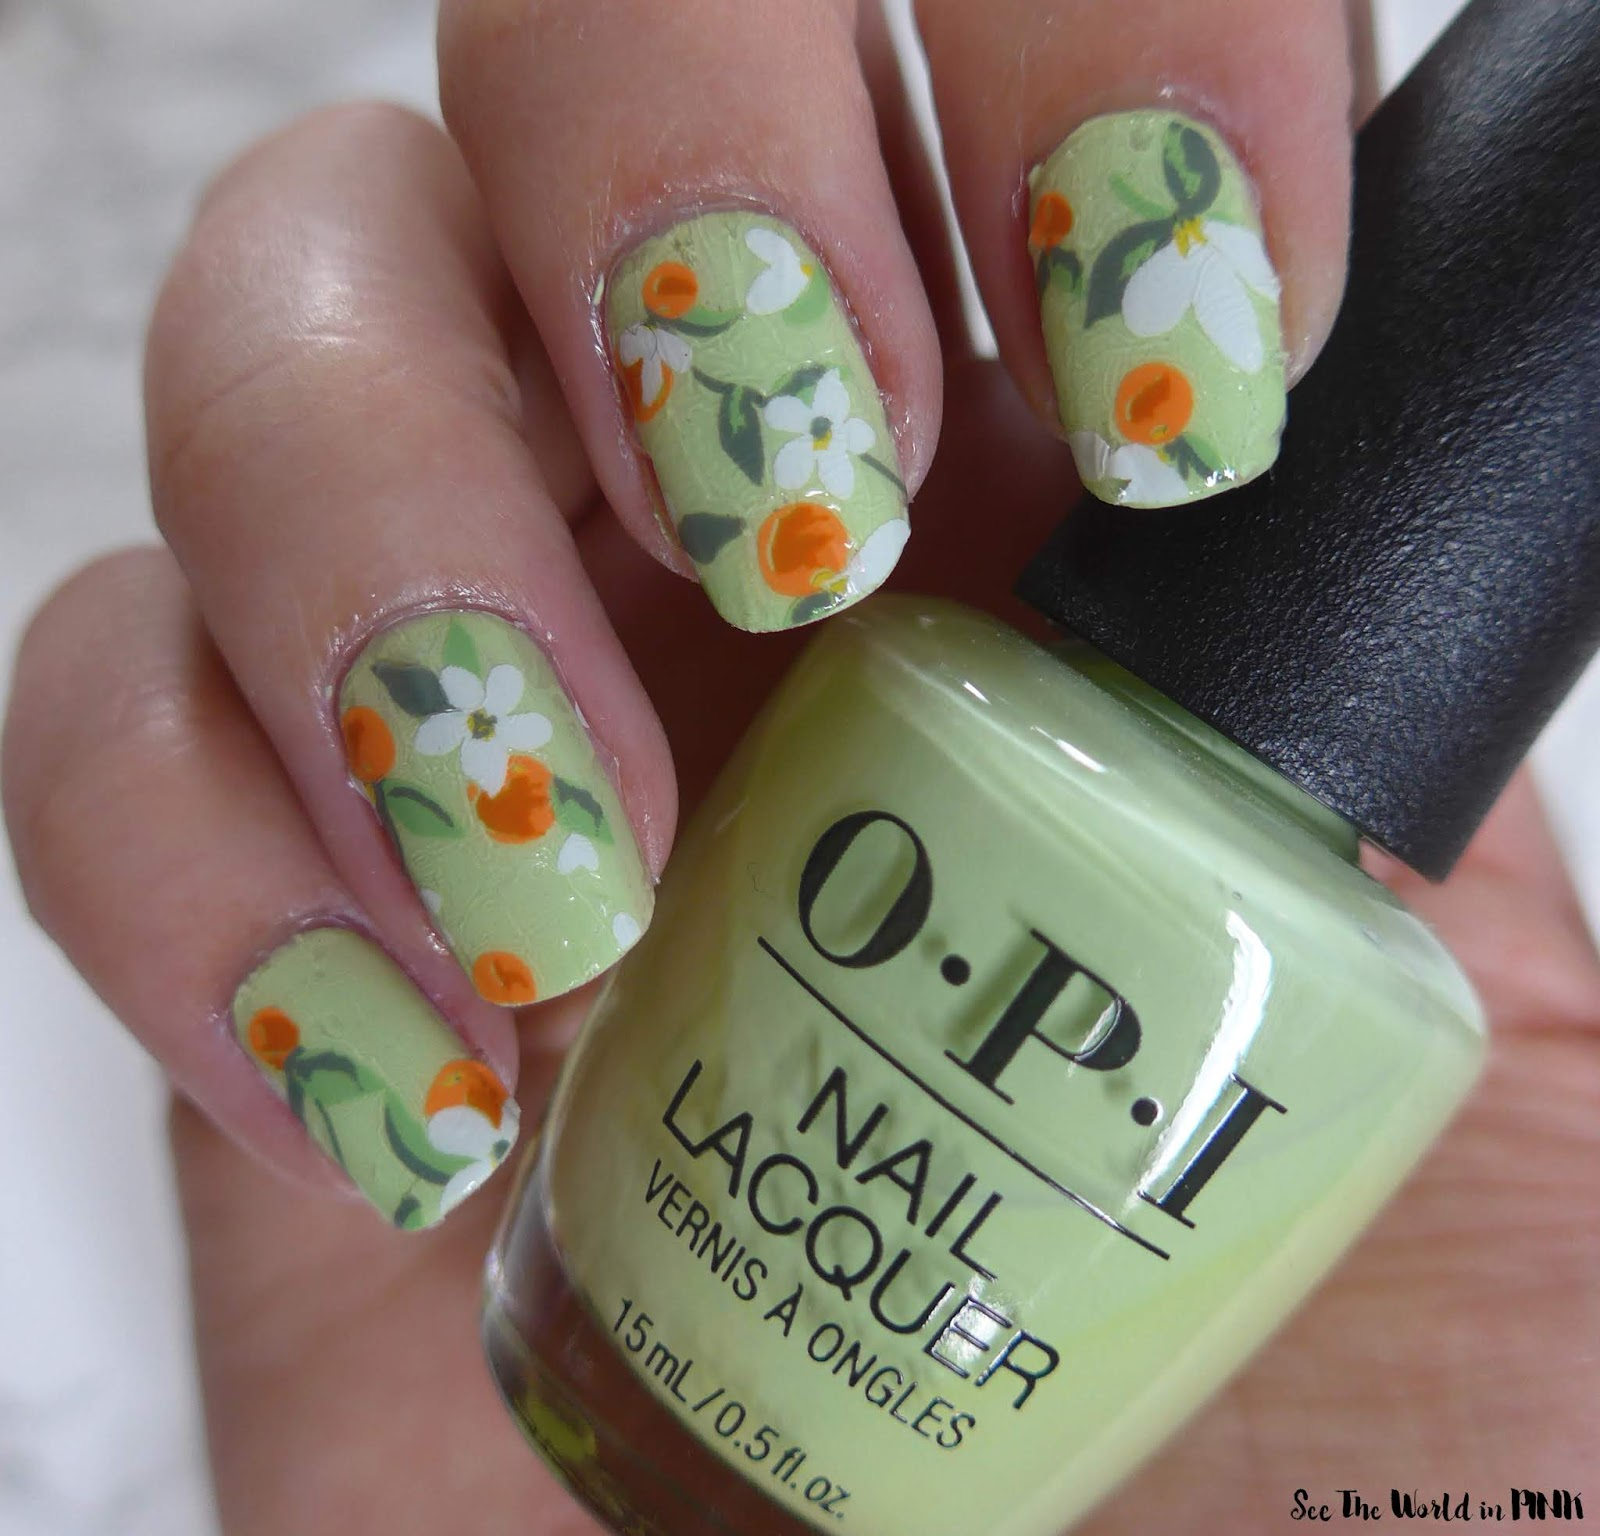 Manicure Monday - Green and Orange Blossom Nails